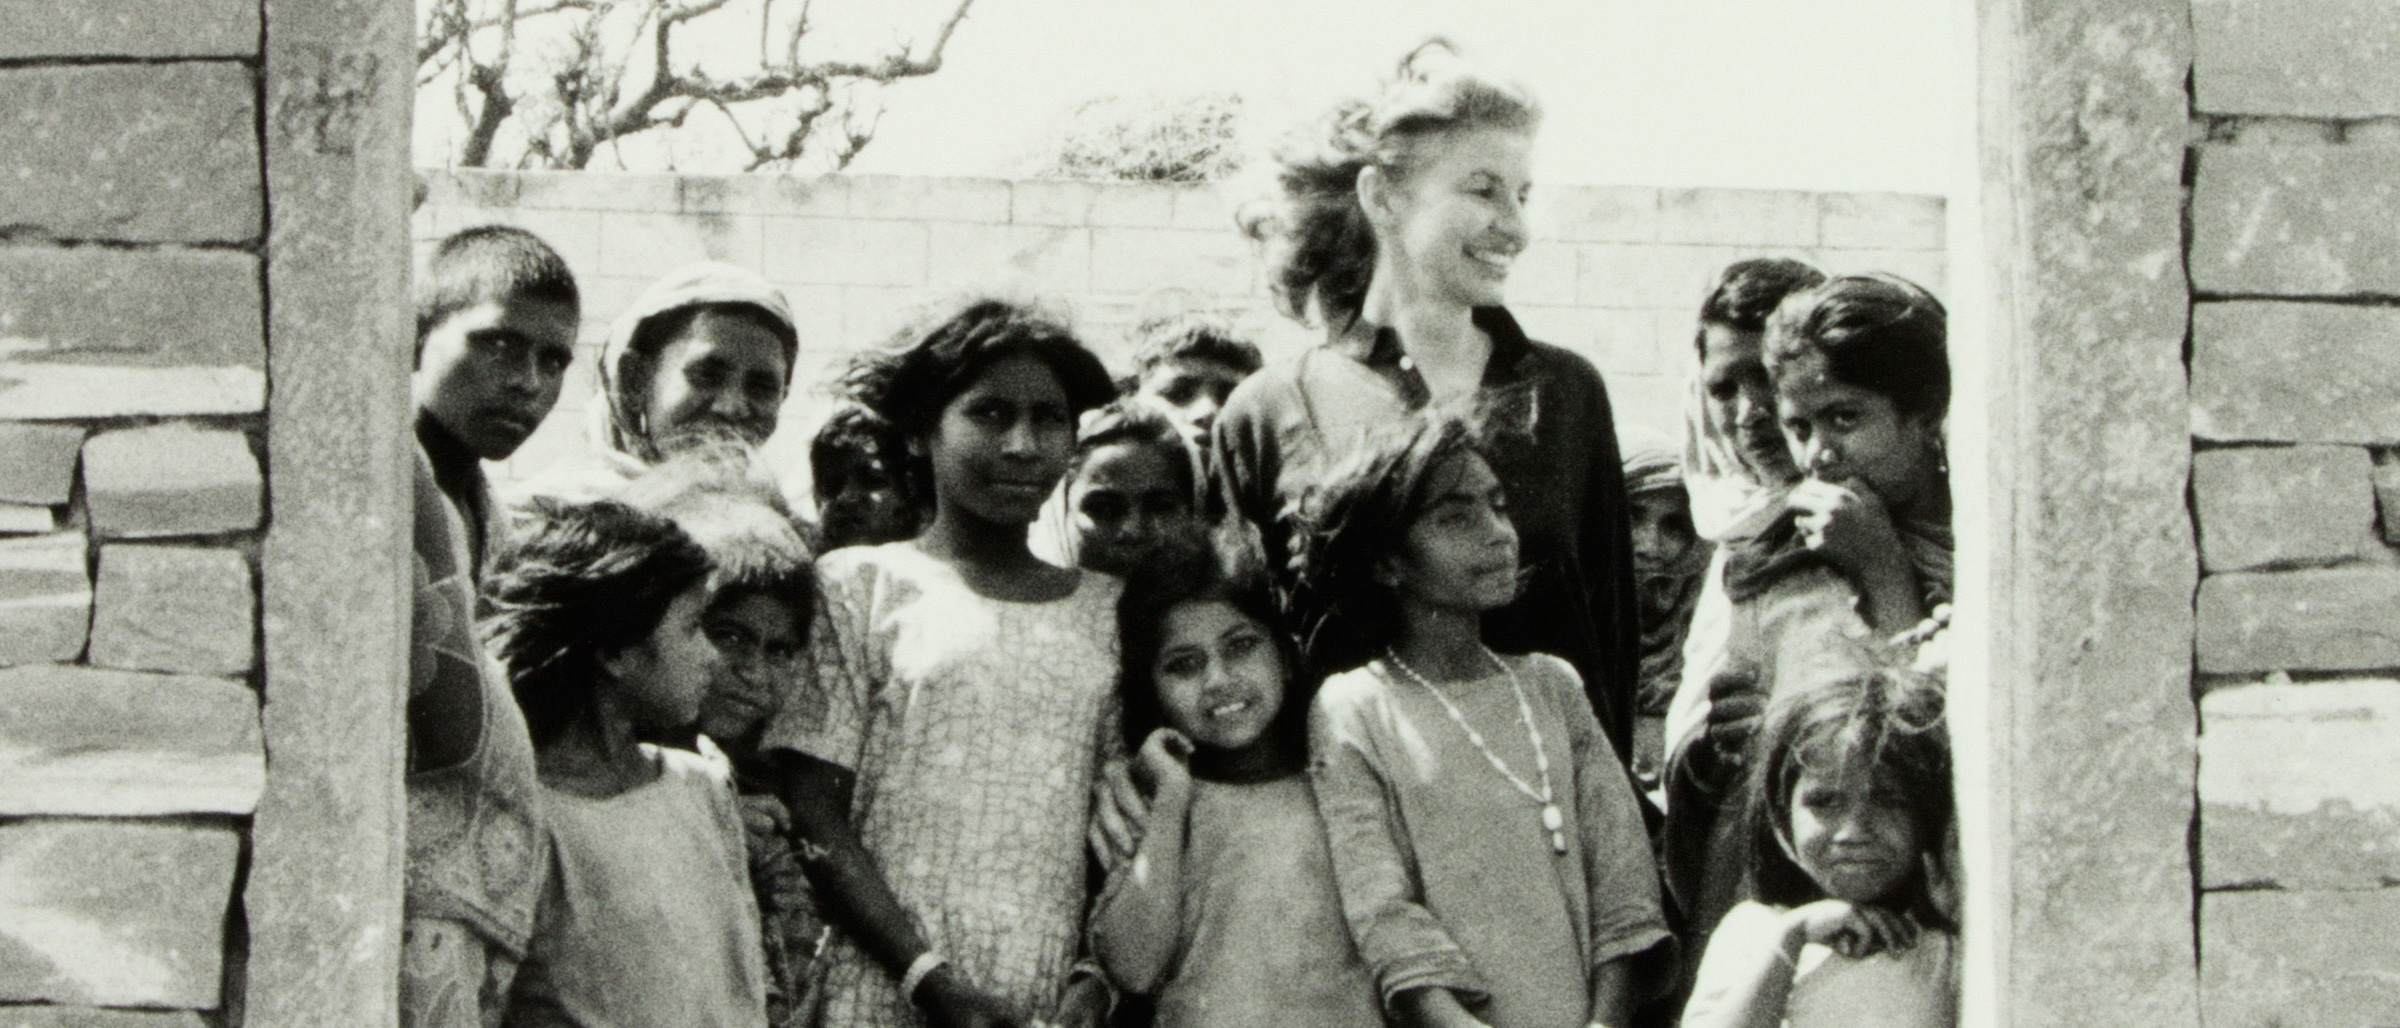 Moynihan's daughter with a group of children